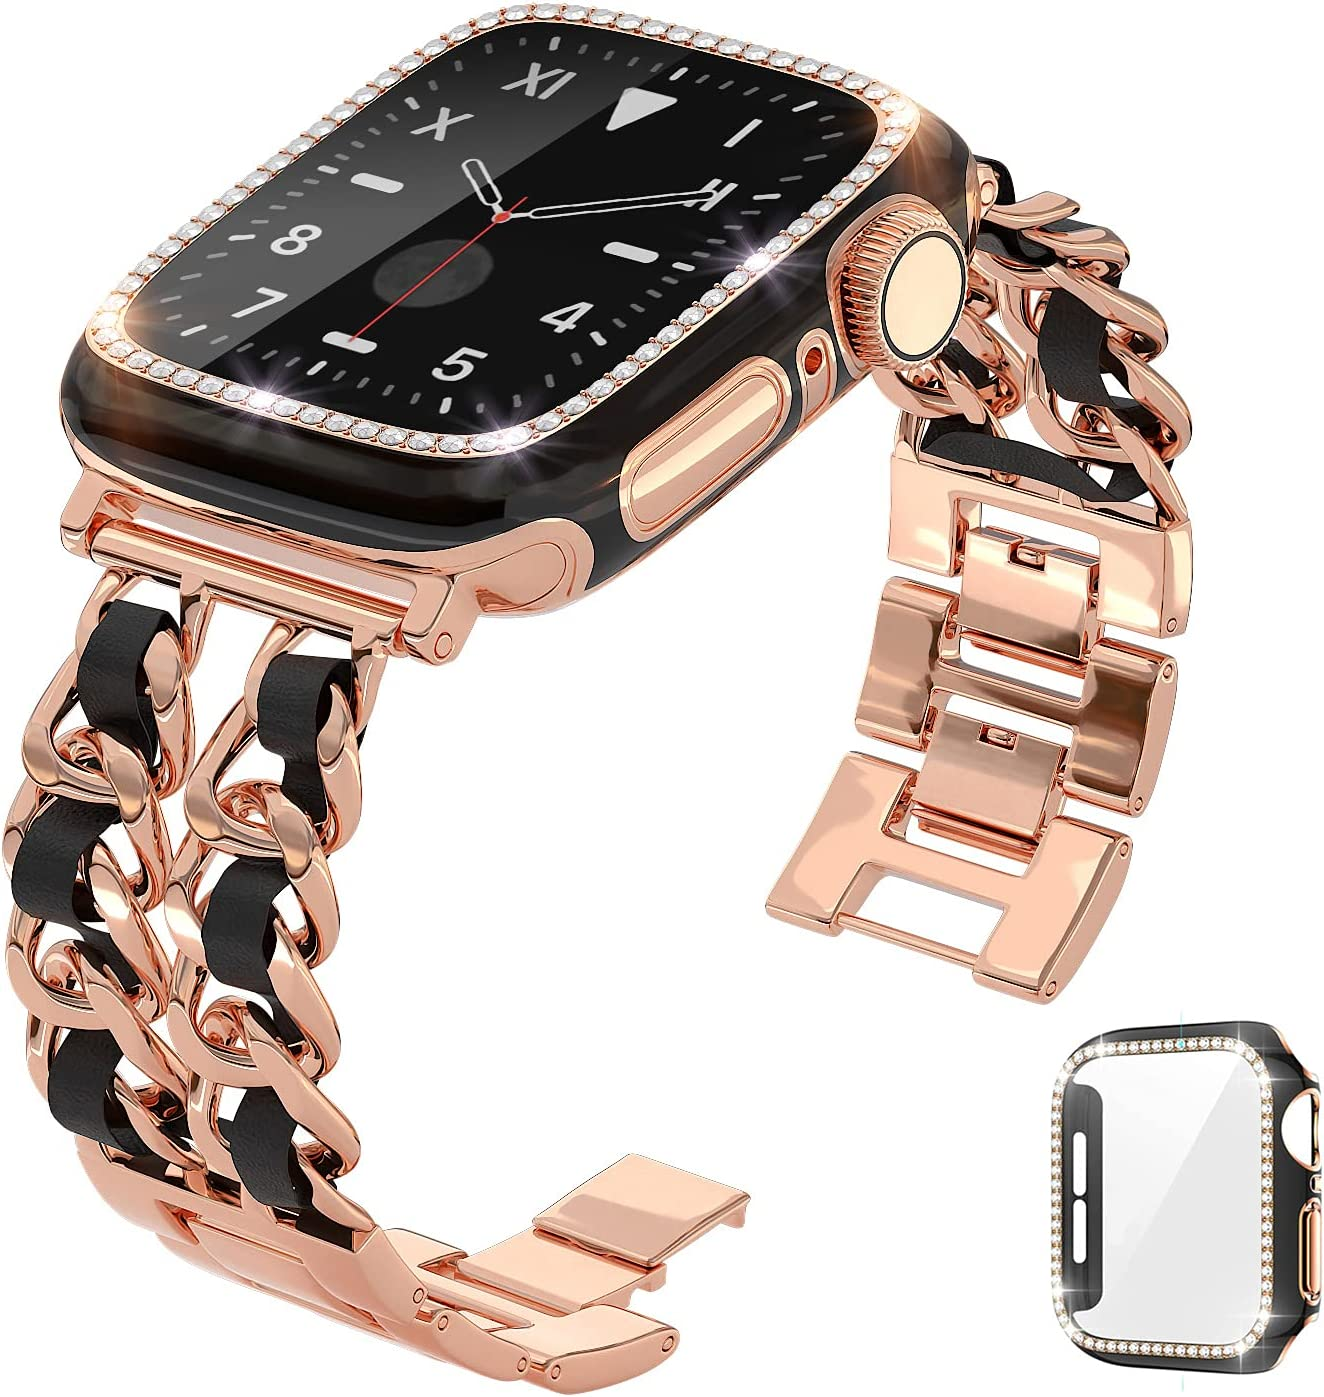 QVLANG Compatible Apple Watch Band 40mm Series 6/5/4/SE, Stainless Metal Replacement Bracelet Wristband for Women + Bling Screen Protector Case for iWatch (Rose Gold/Black, 40mm)